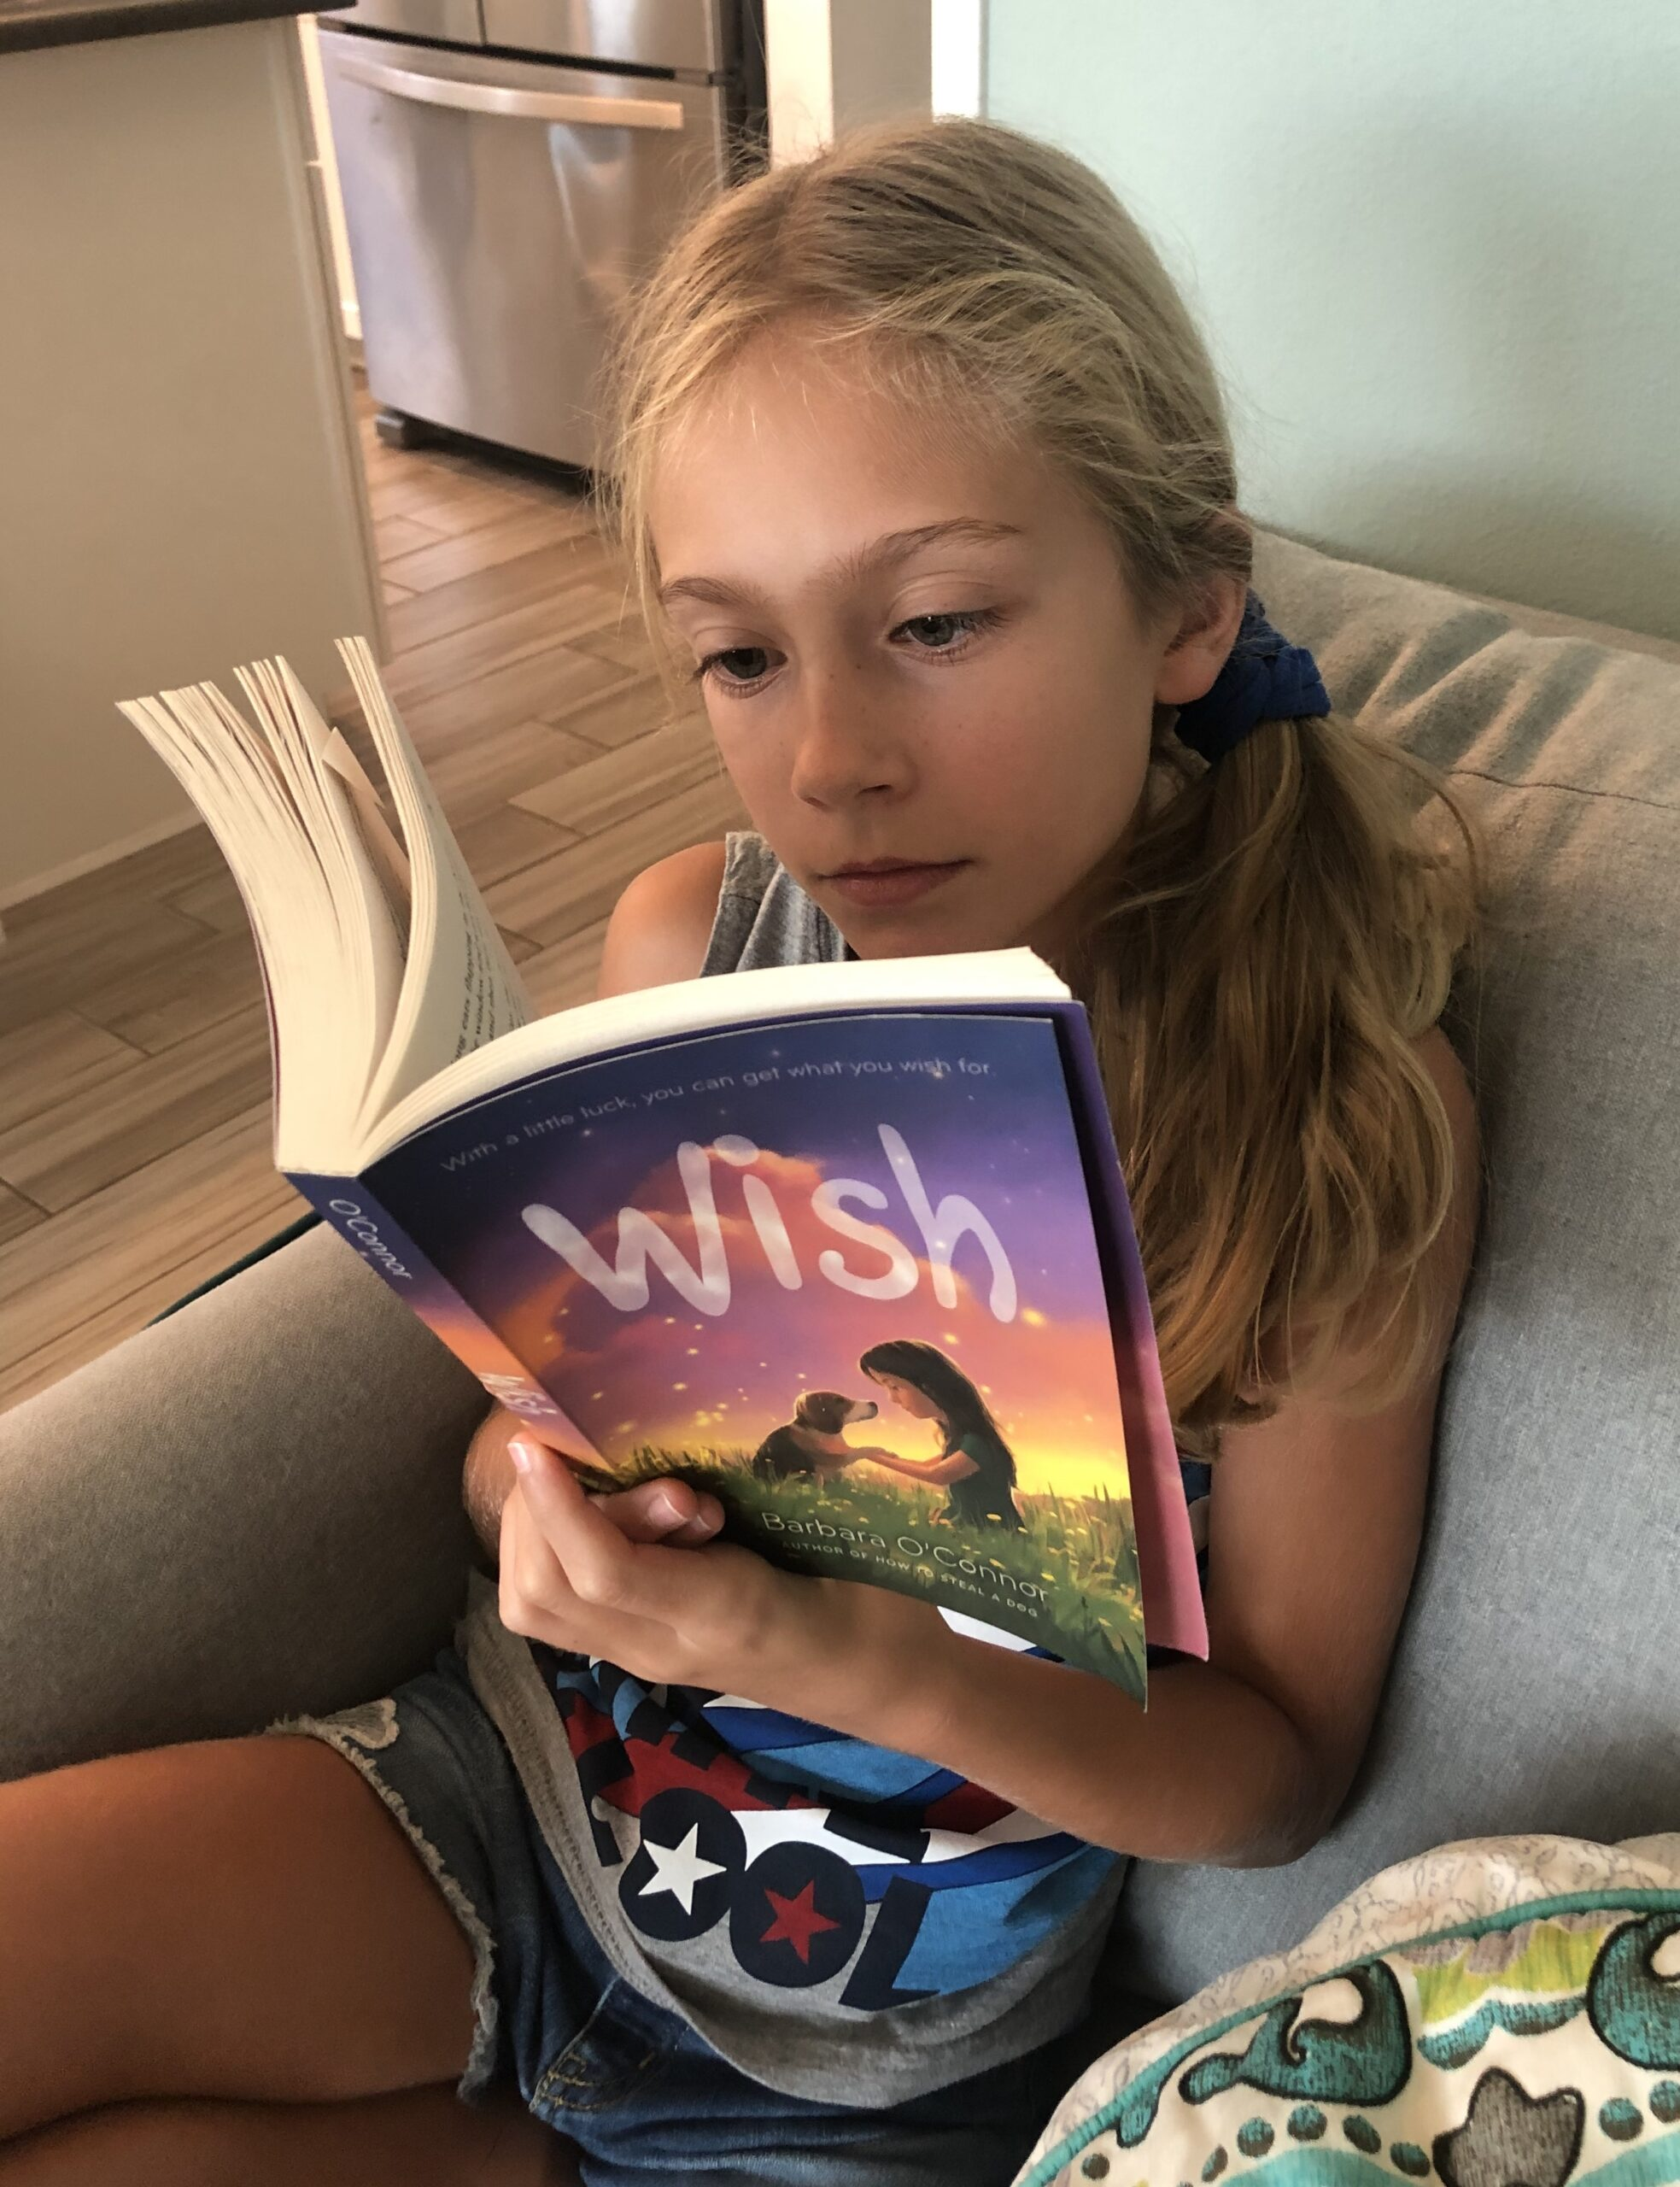 Blonde haired Brecken reading Wish by Barbara O'Connor for the children's book review.